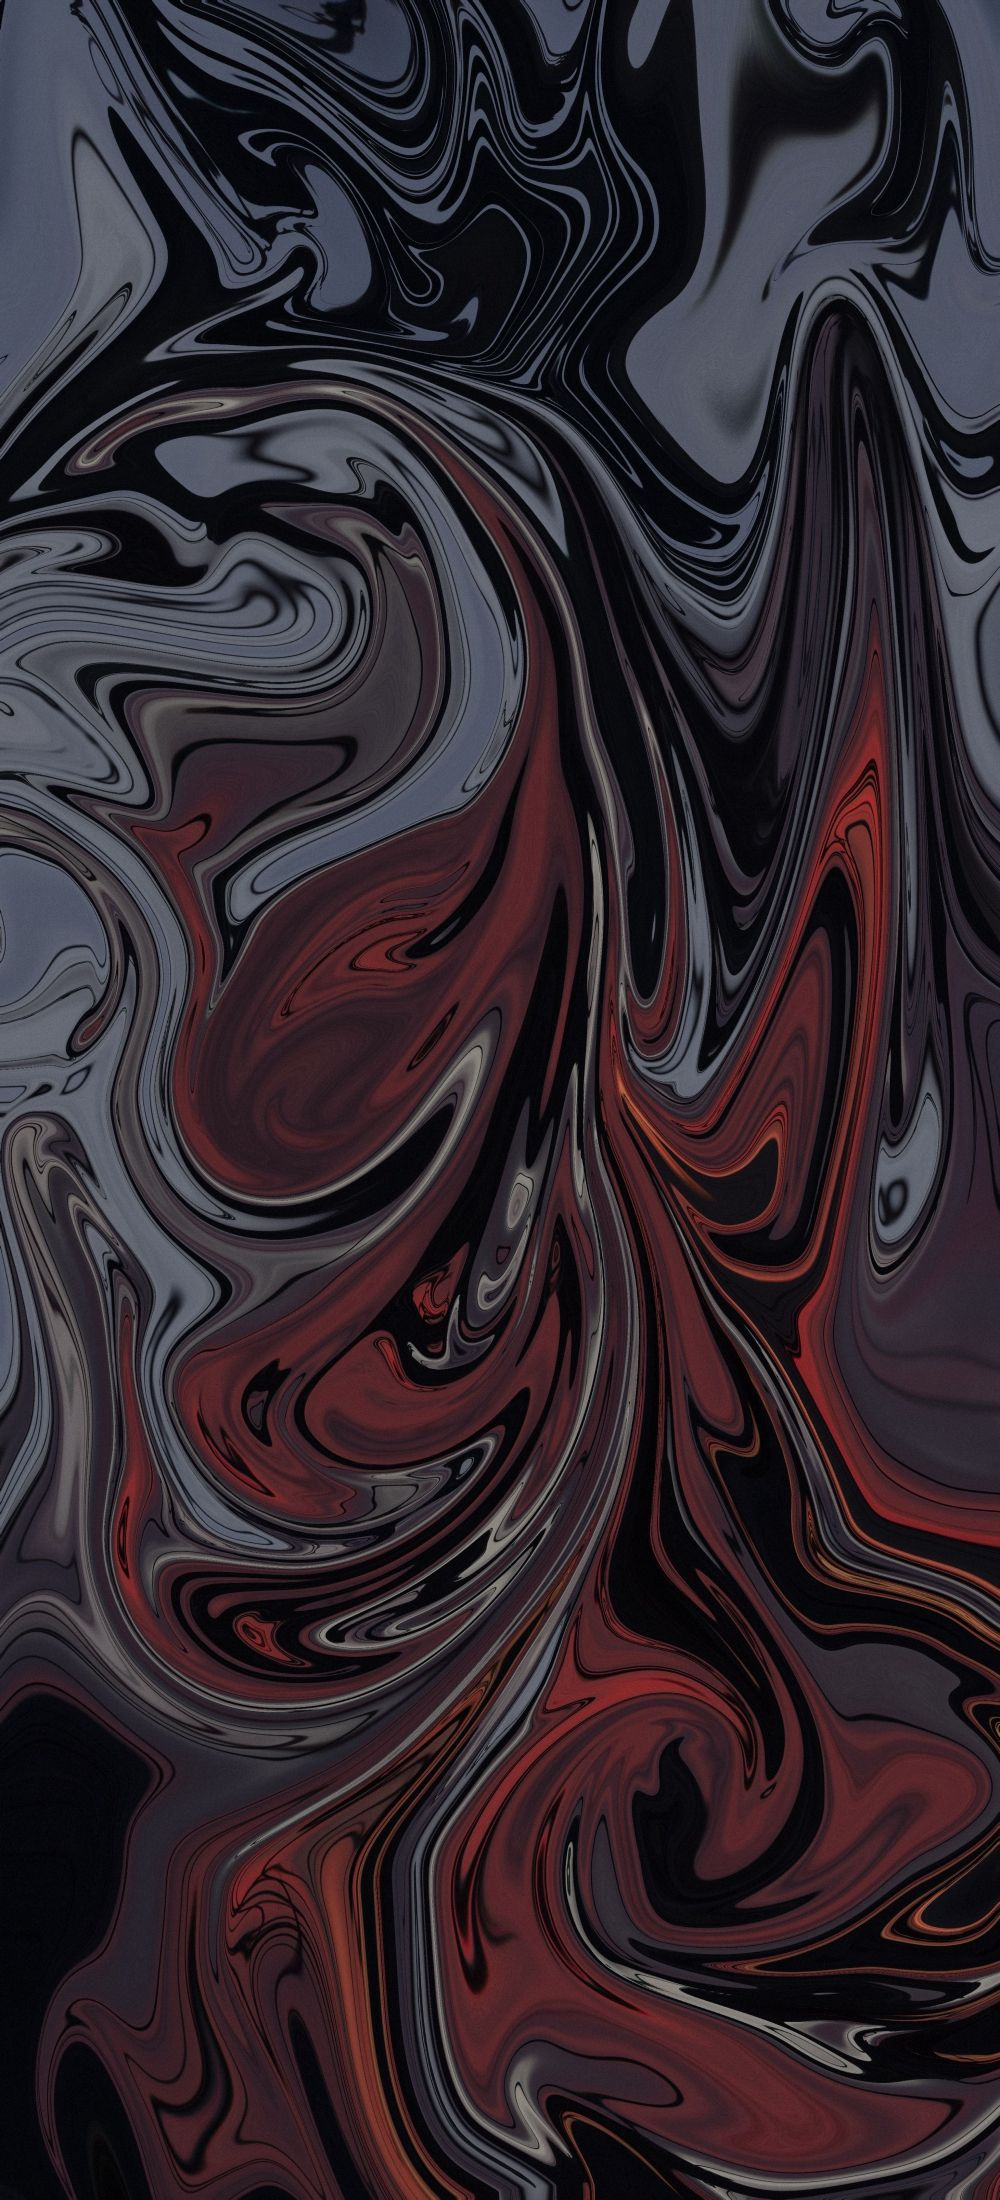 Phone Wallpapers Dark Background In 2020 Painting Wallpaper Red Abstract Painting Art Wallpaper Iphone